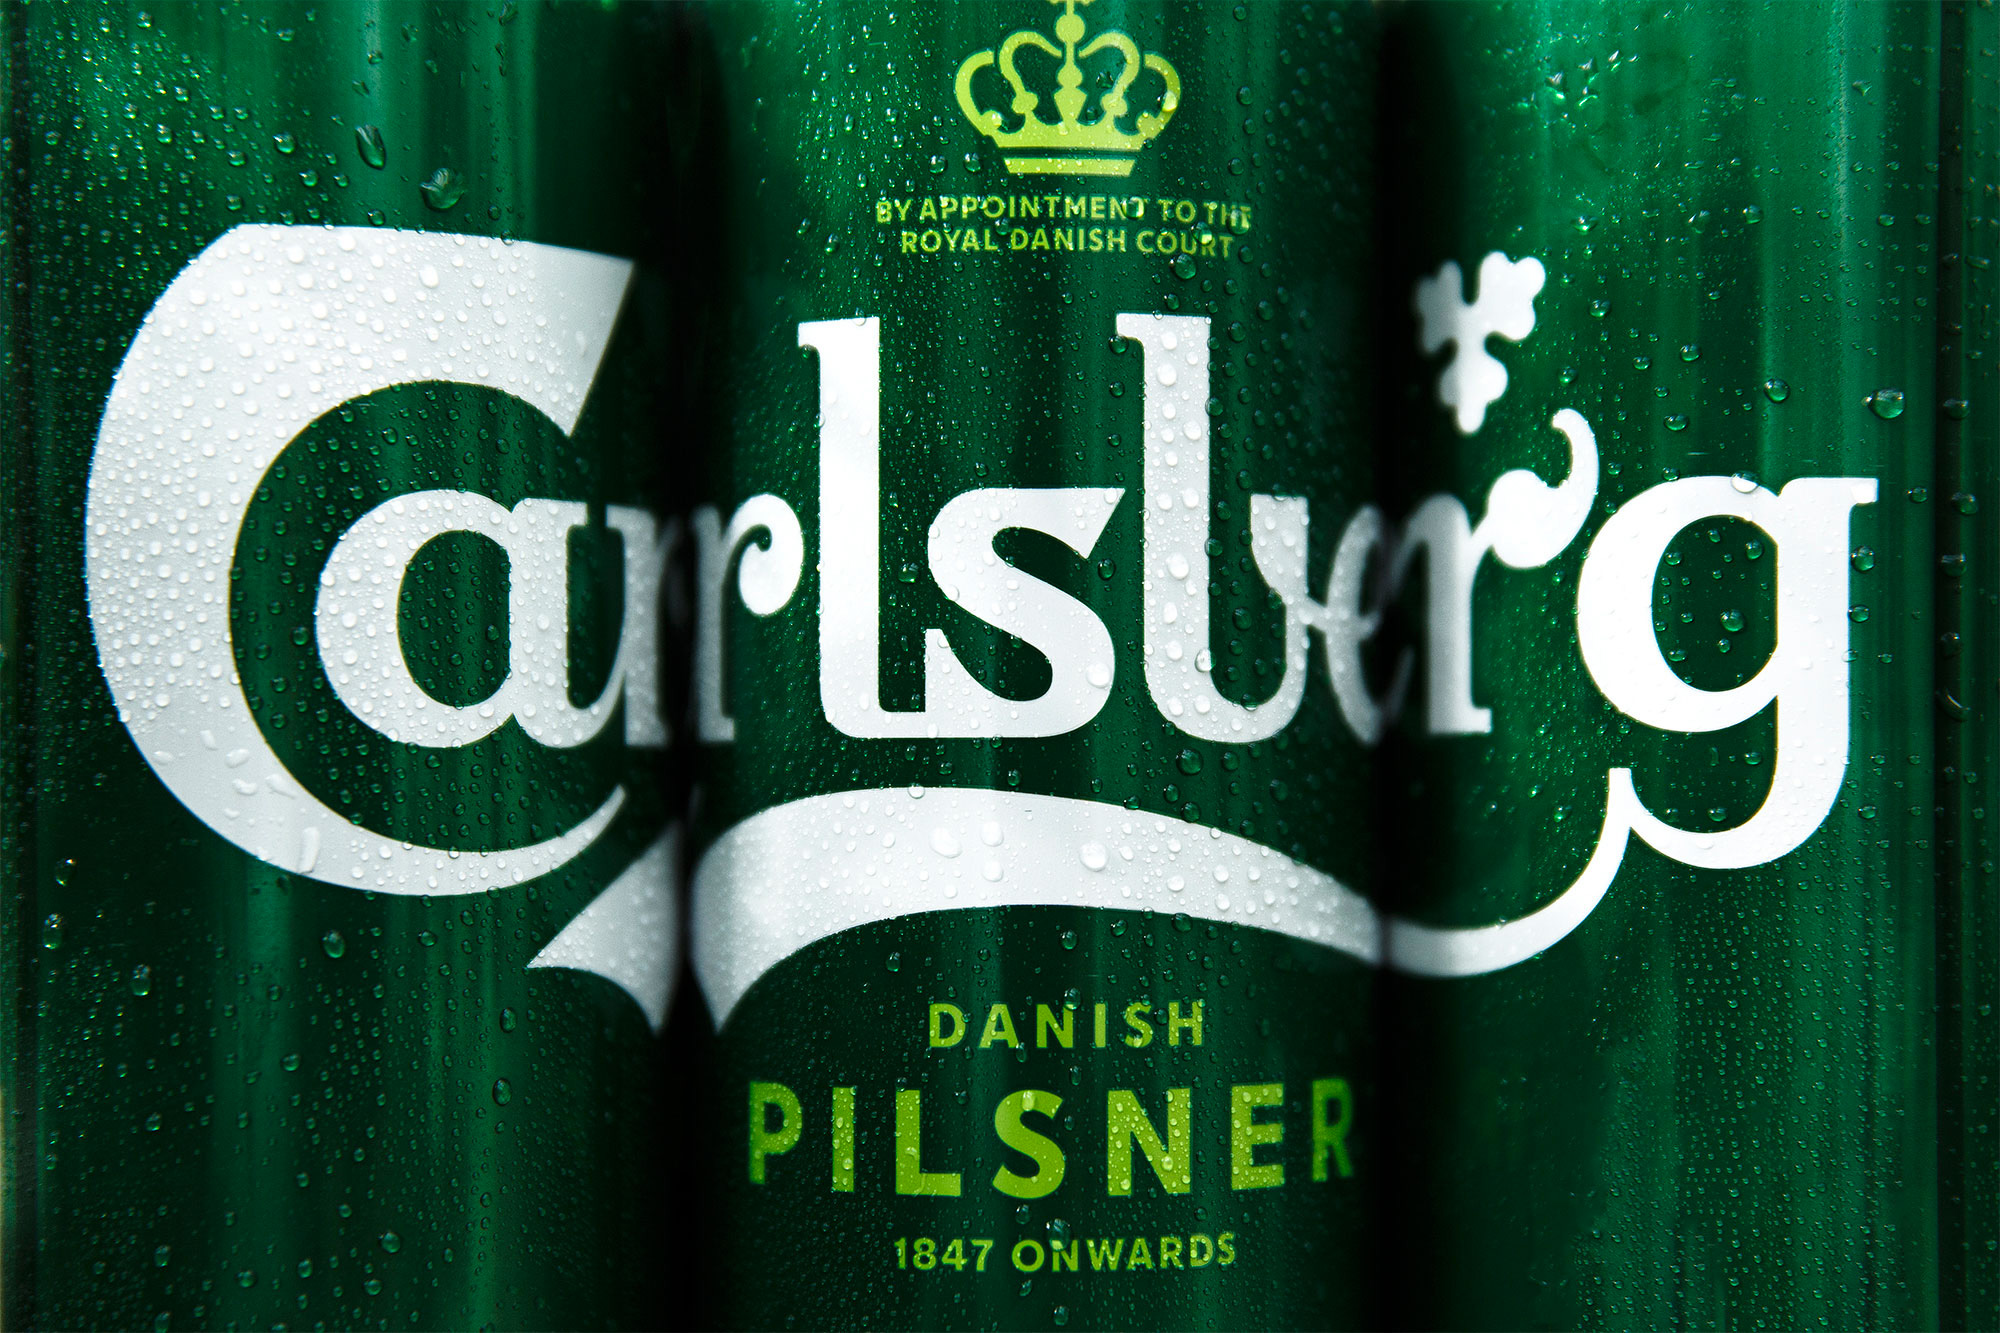 New Logo and Packaging for Carlsberg by Taxi Studio